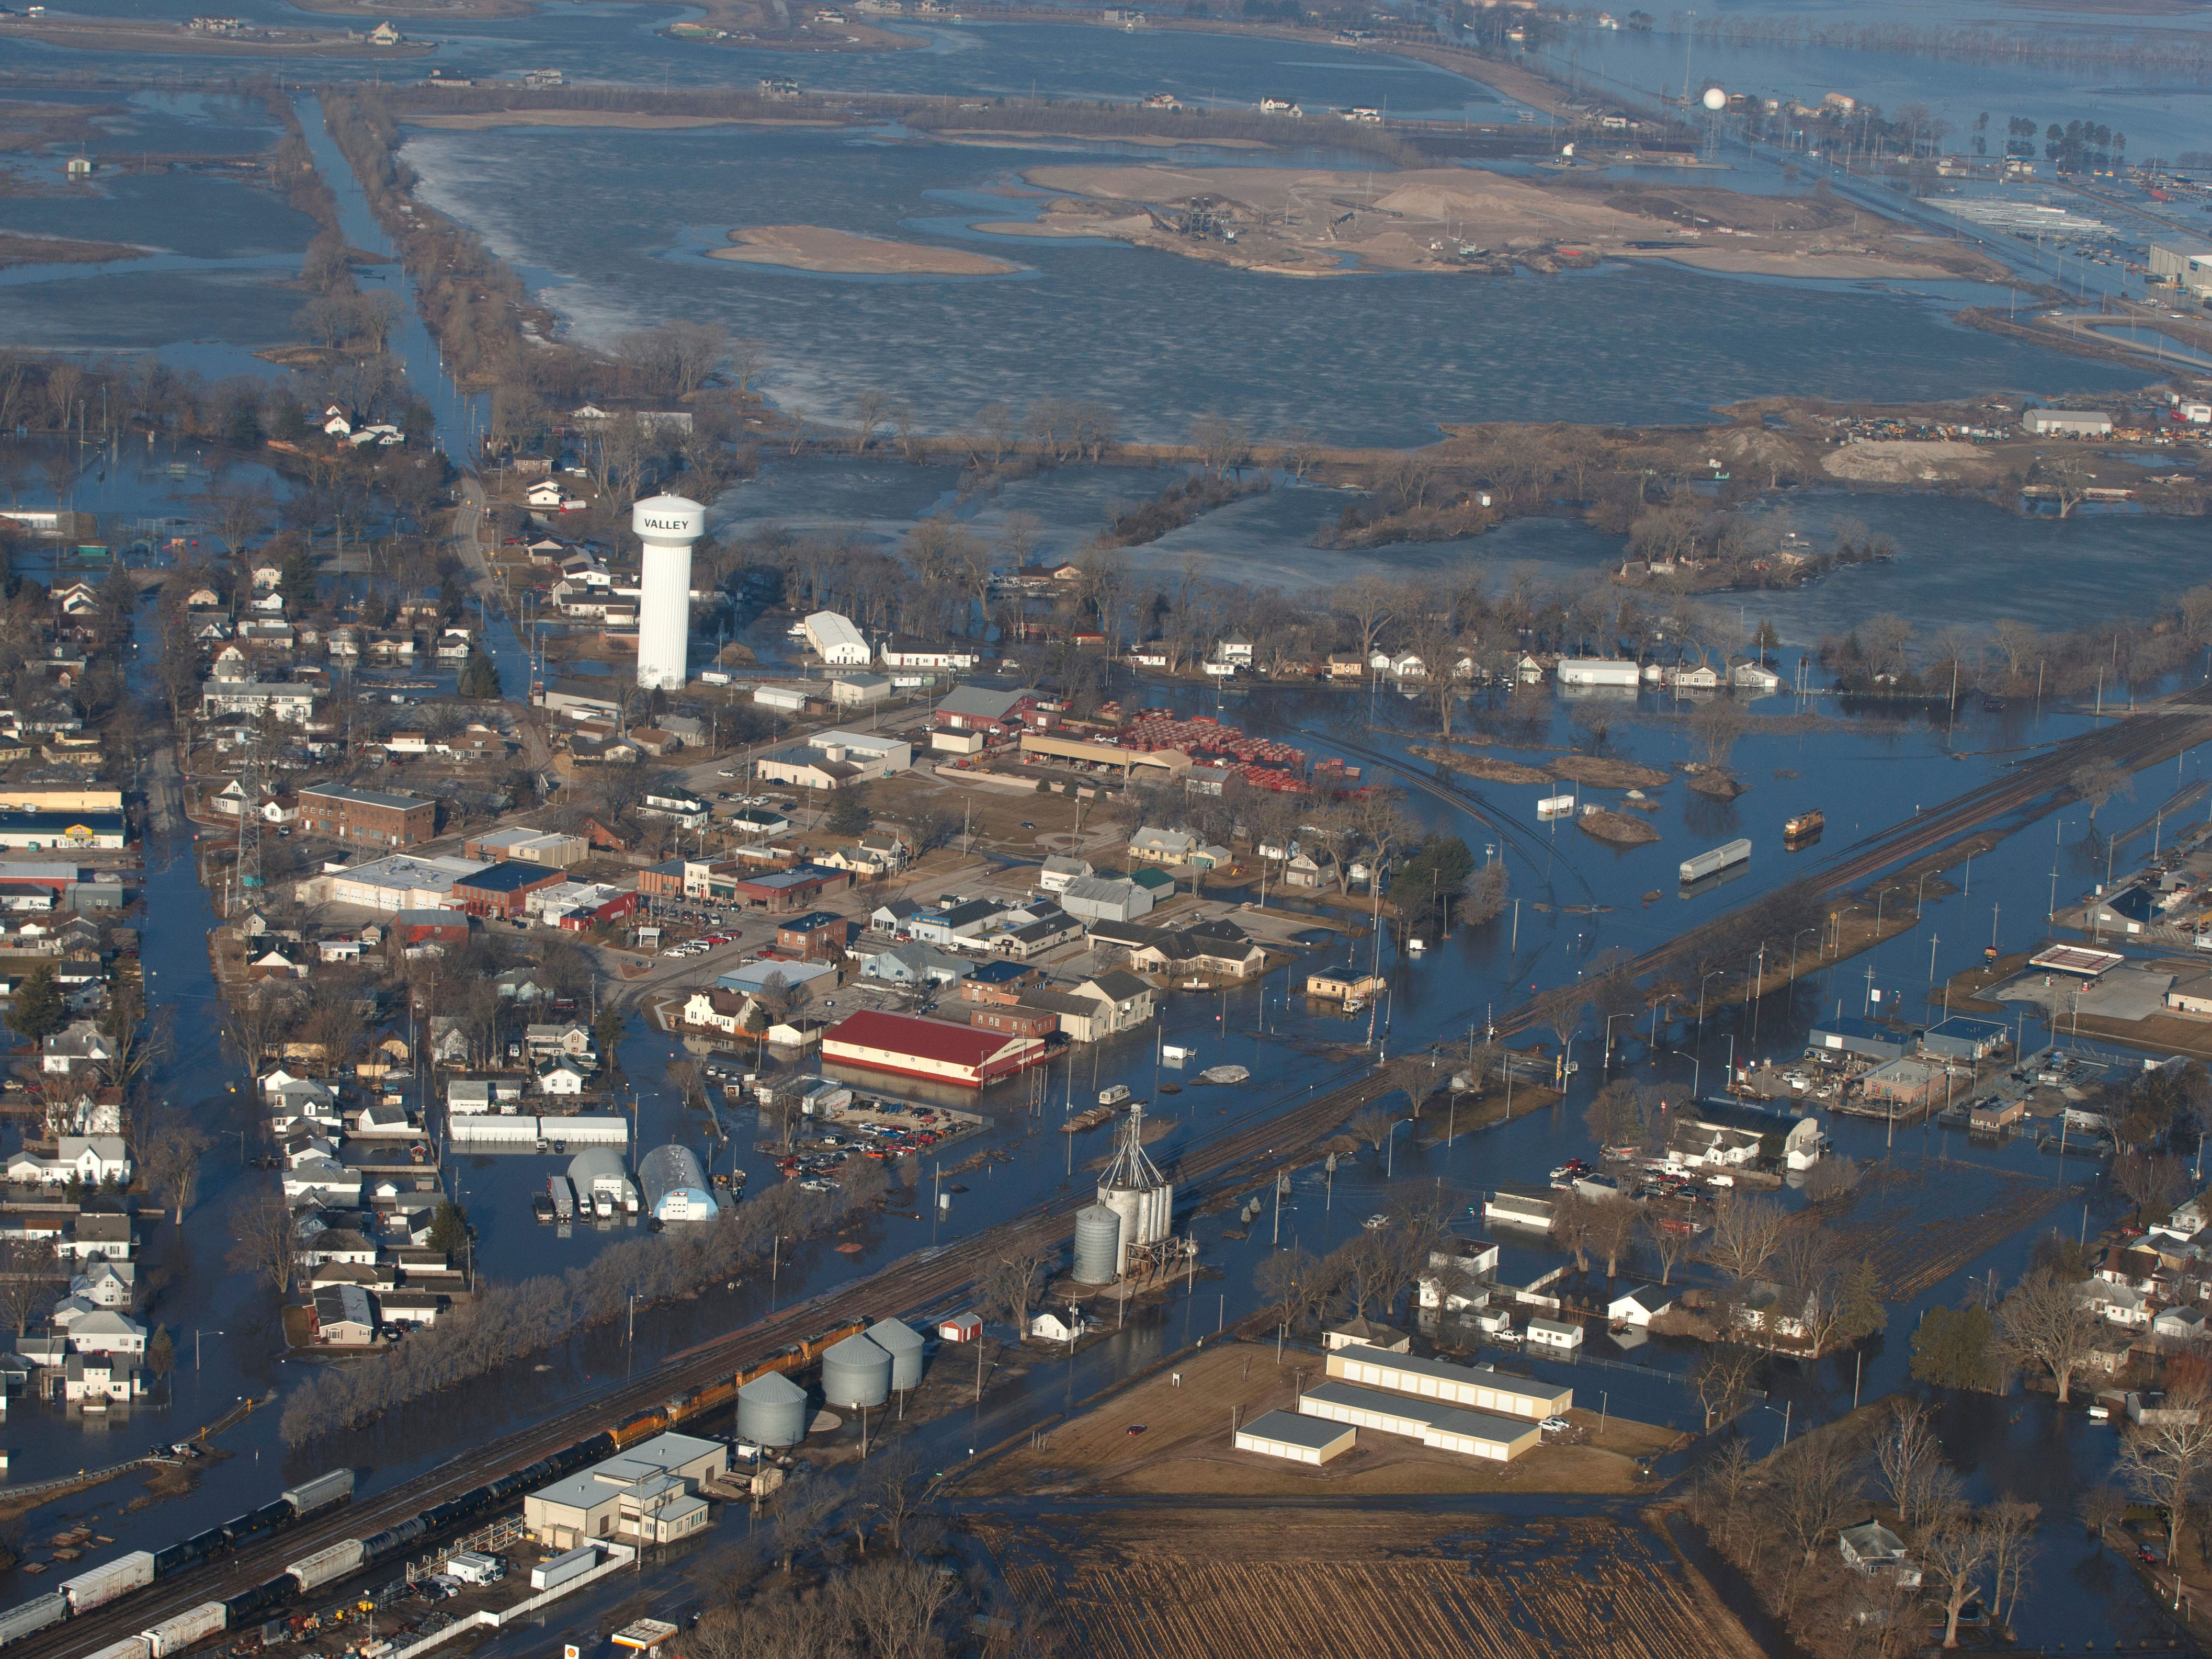 The city of Valley is inundated with floodwaters Sunday, March 17, 2019, in Valley, Neb.